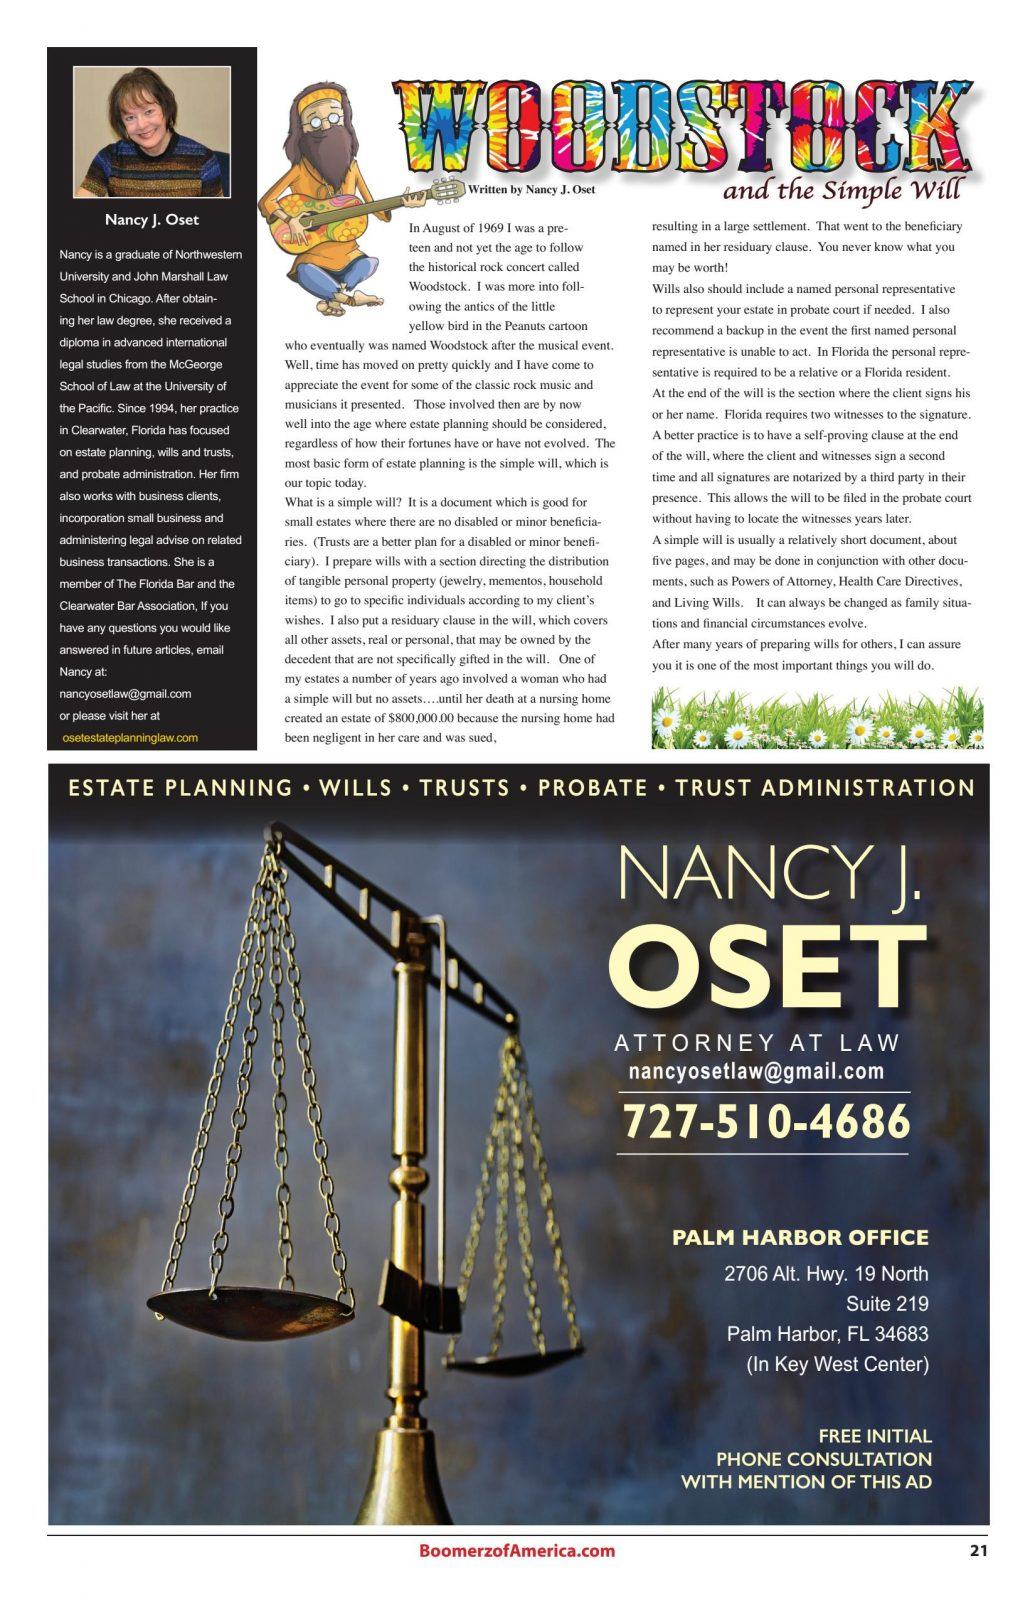 Boomerz August 2019 Nancy Oset Woodstock